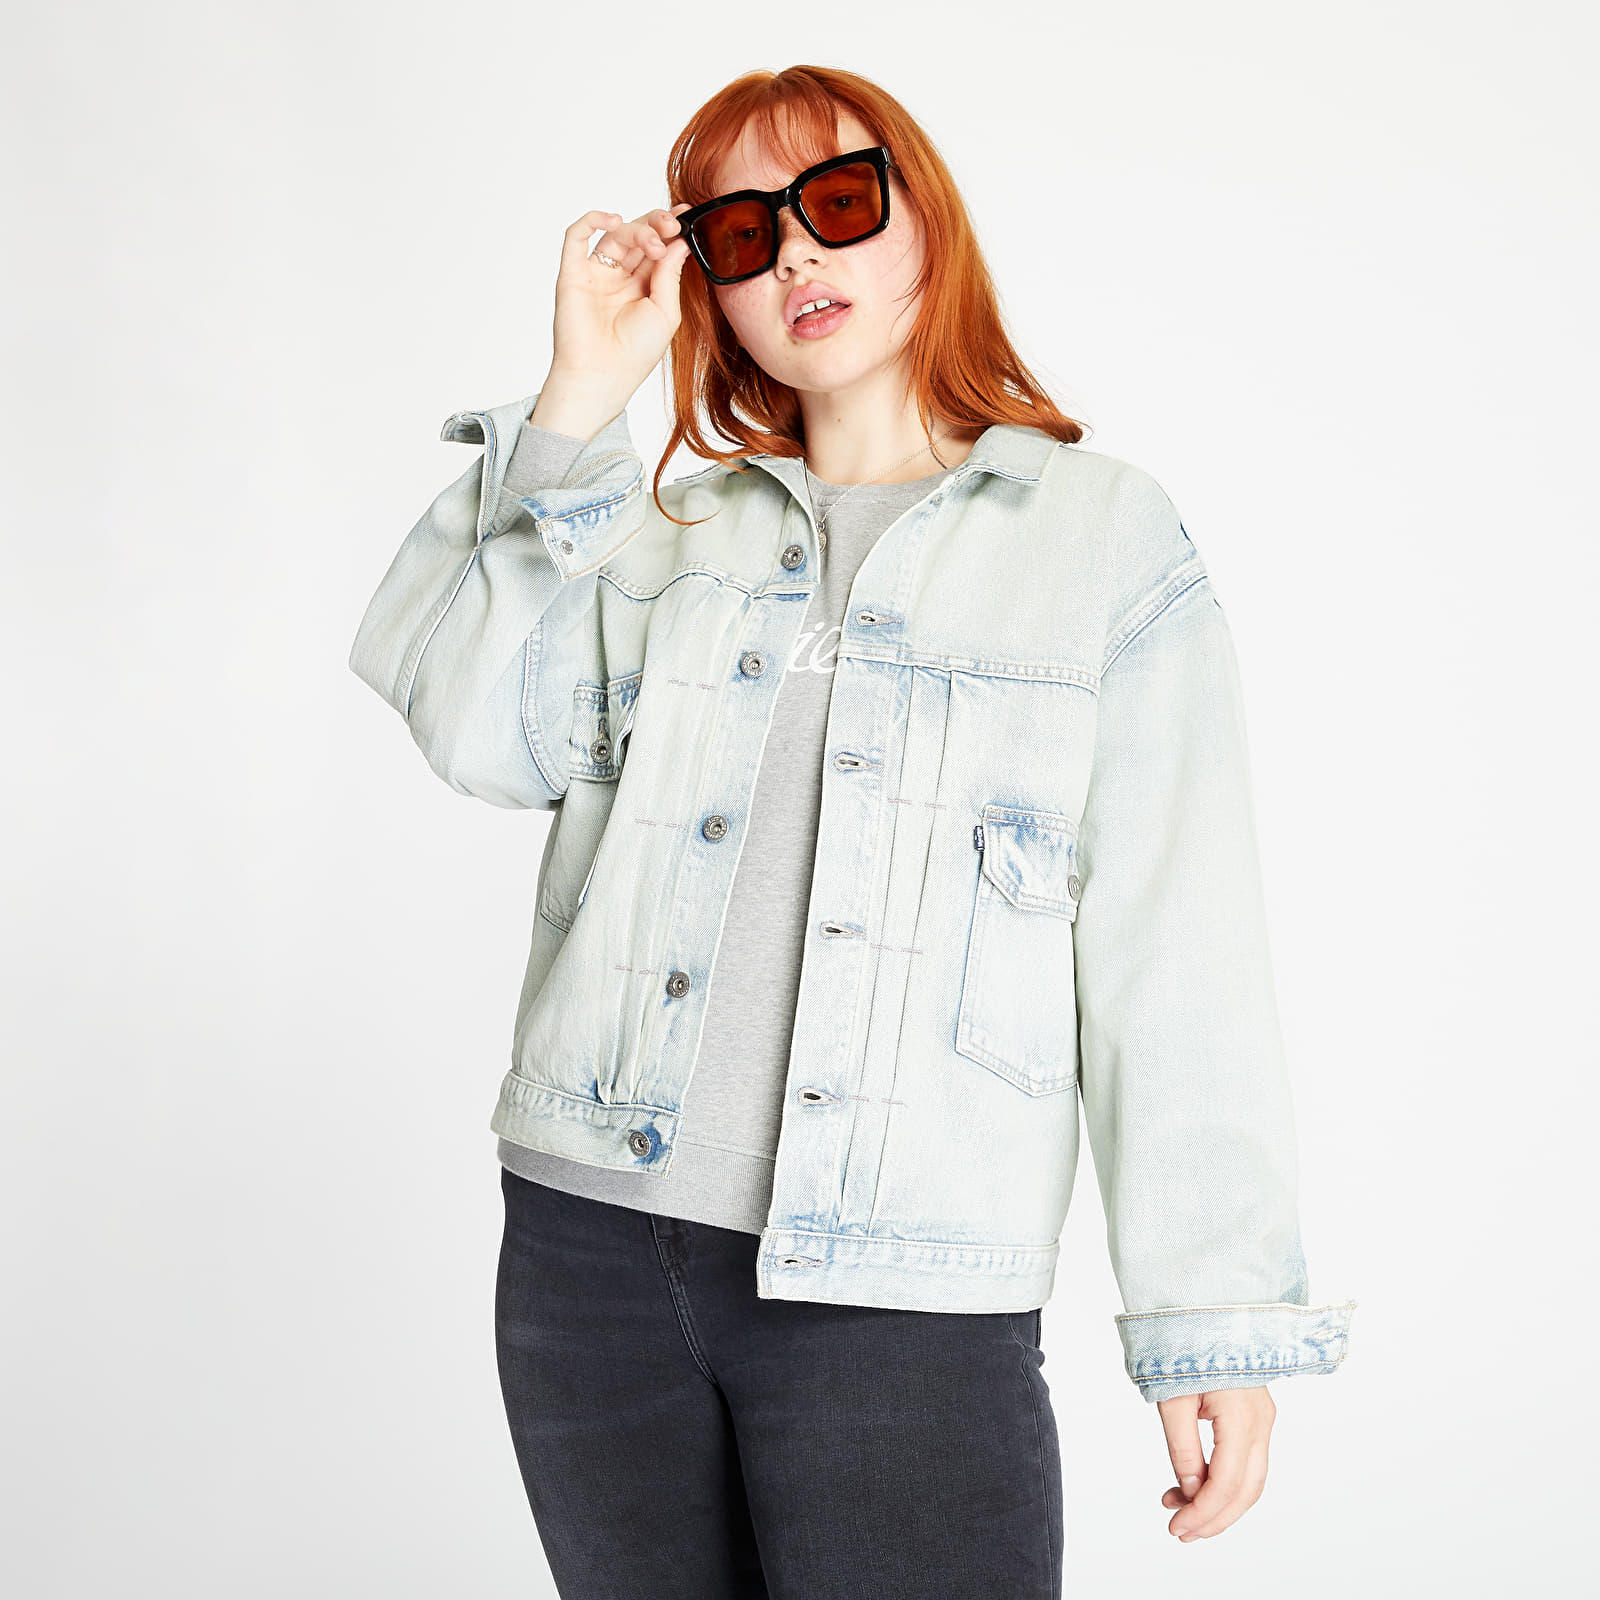 Jackets Levi's Love Letter Trucker Jacket Light Blue Denim